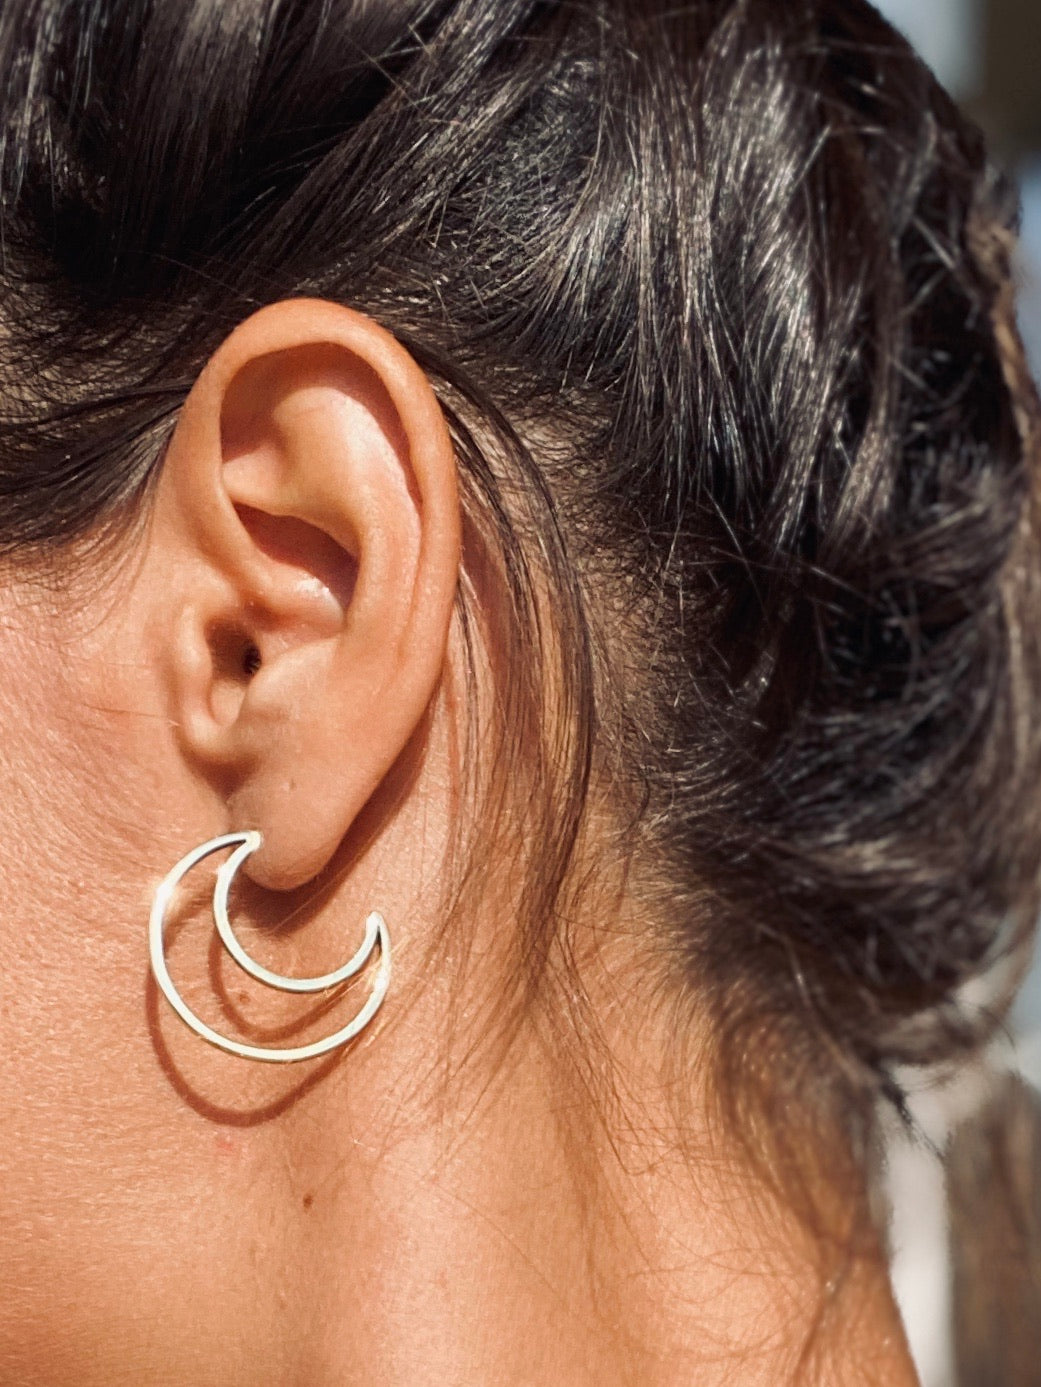 SEA YOU MOON Ohrring | Earring Gold - The Santai Collection